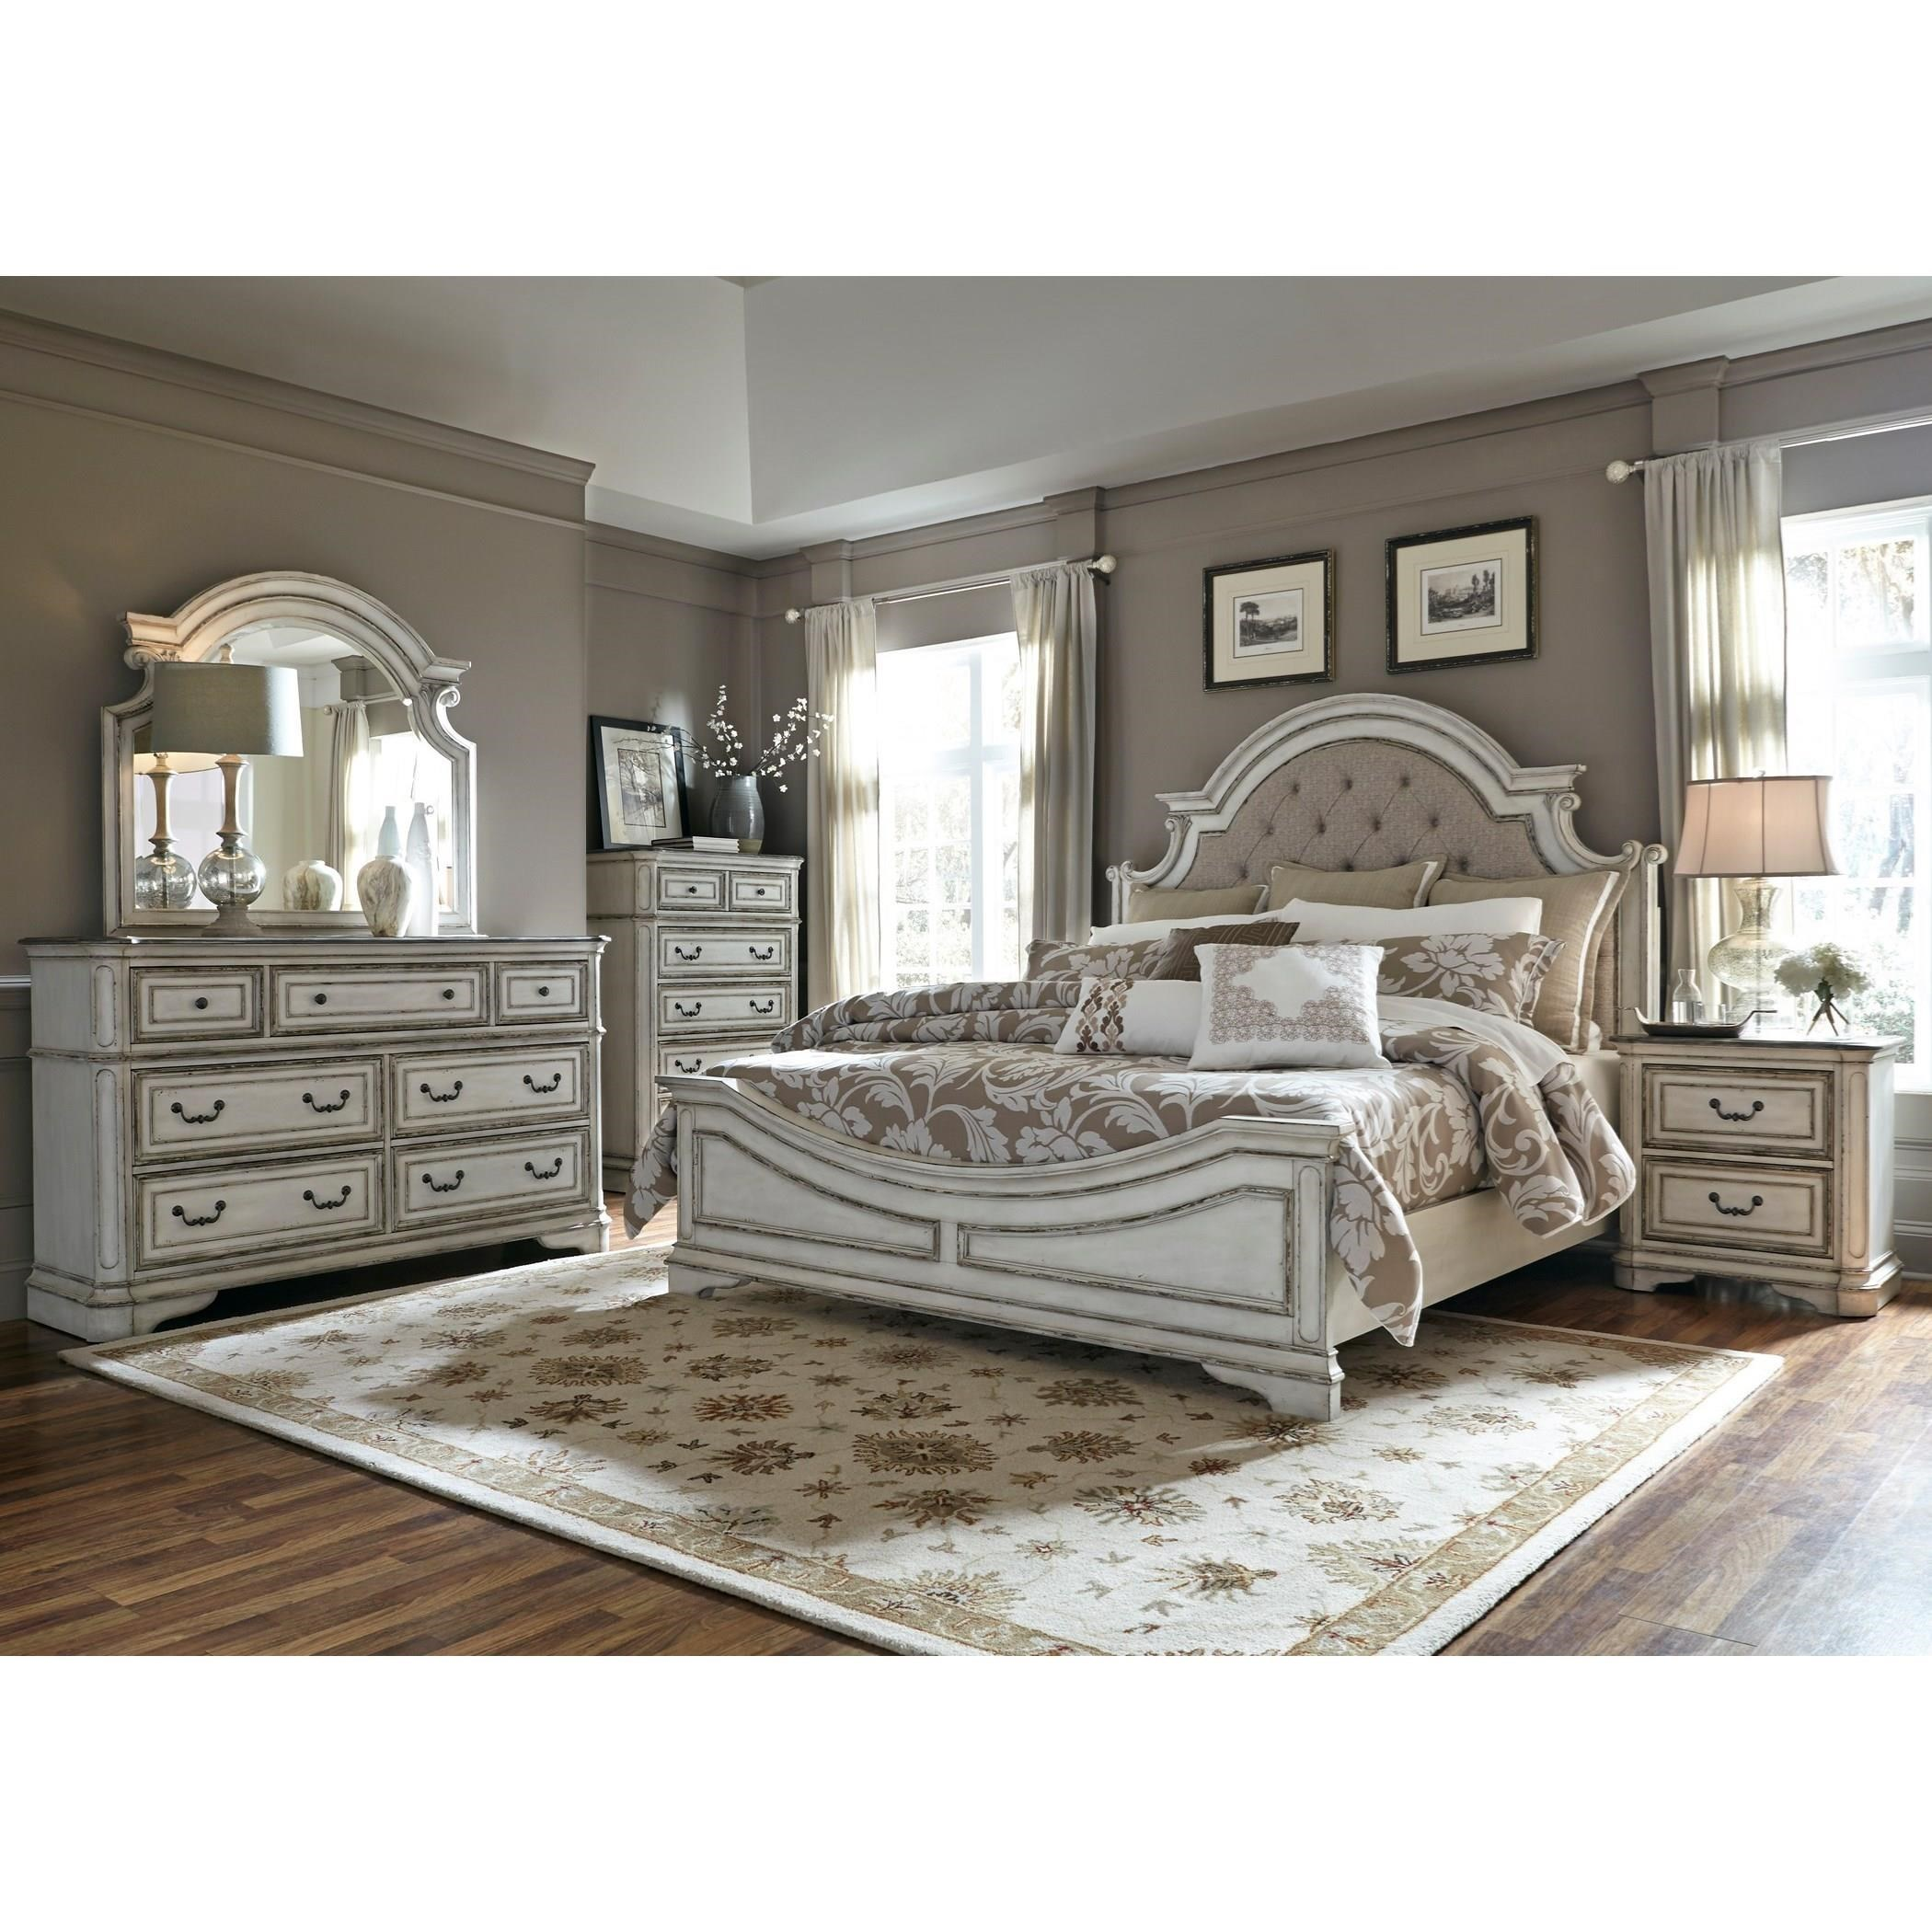 Magnolia Manor 3 Piece Bedroom Set by Liberty Furniture at Darvin Furniture